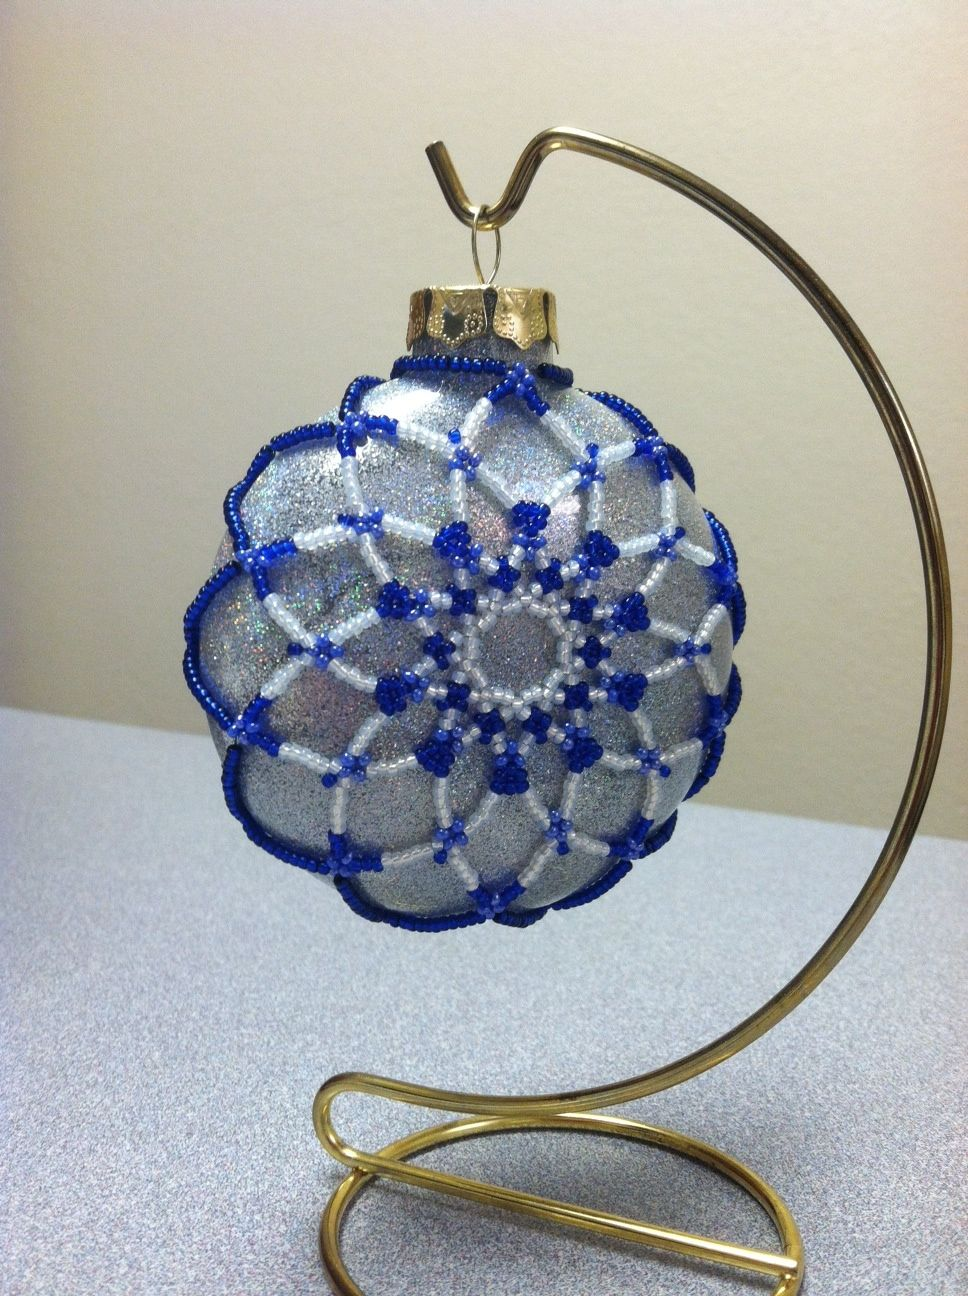 Beaded Ornament Cover -Snowflake on a Flat Glass Ornament ...